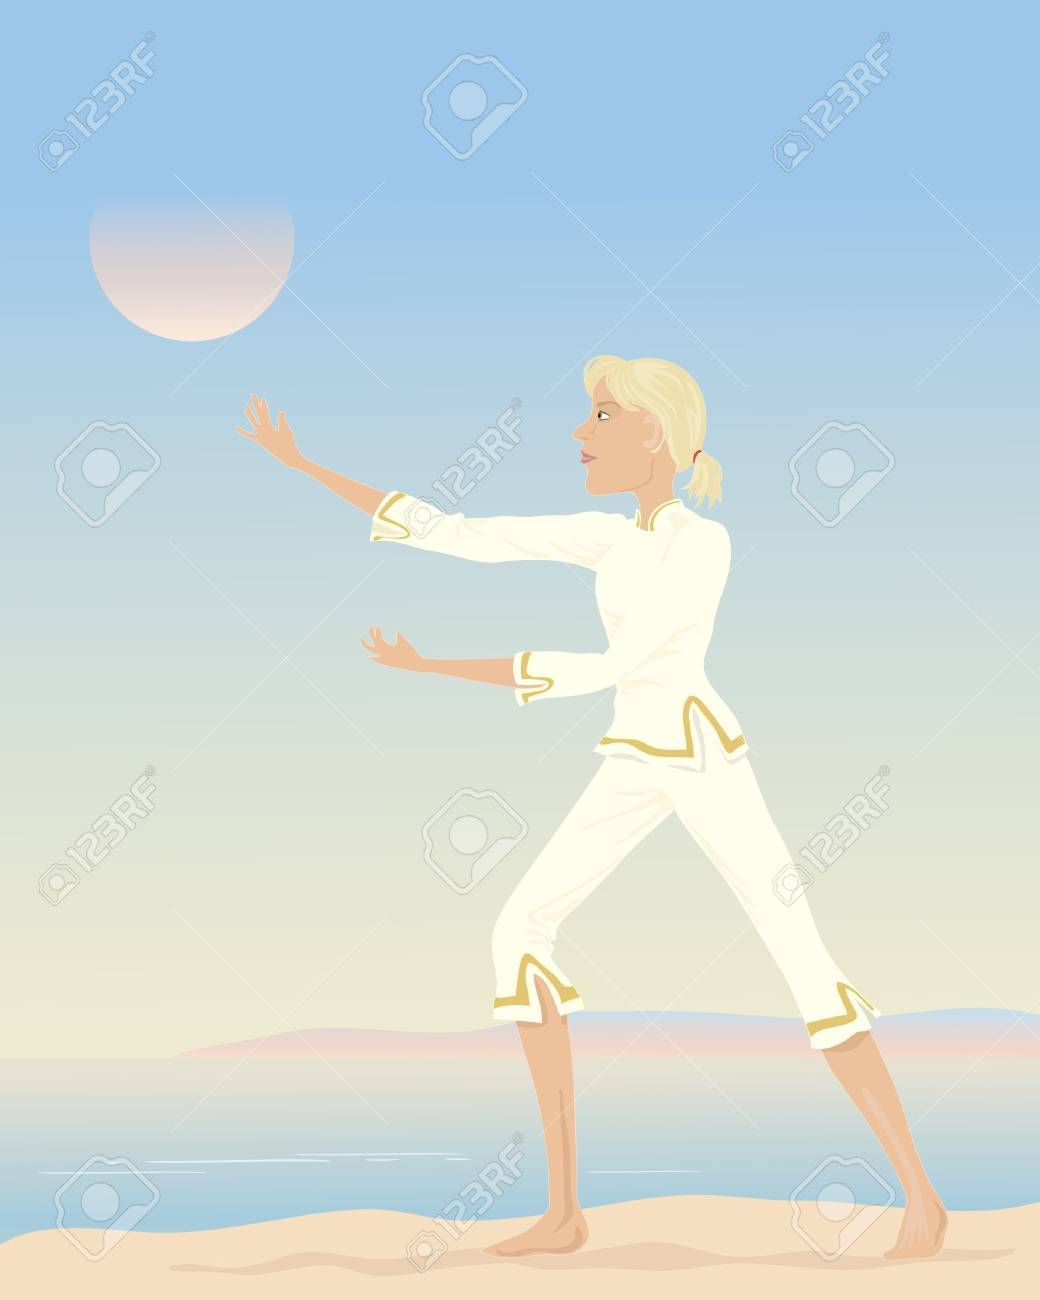 an illustration of a woman practising tai chi with a seascape background Stock Vector - 11537300